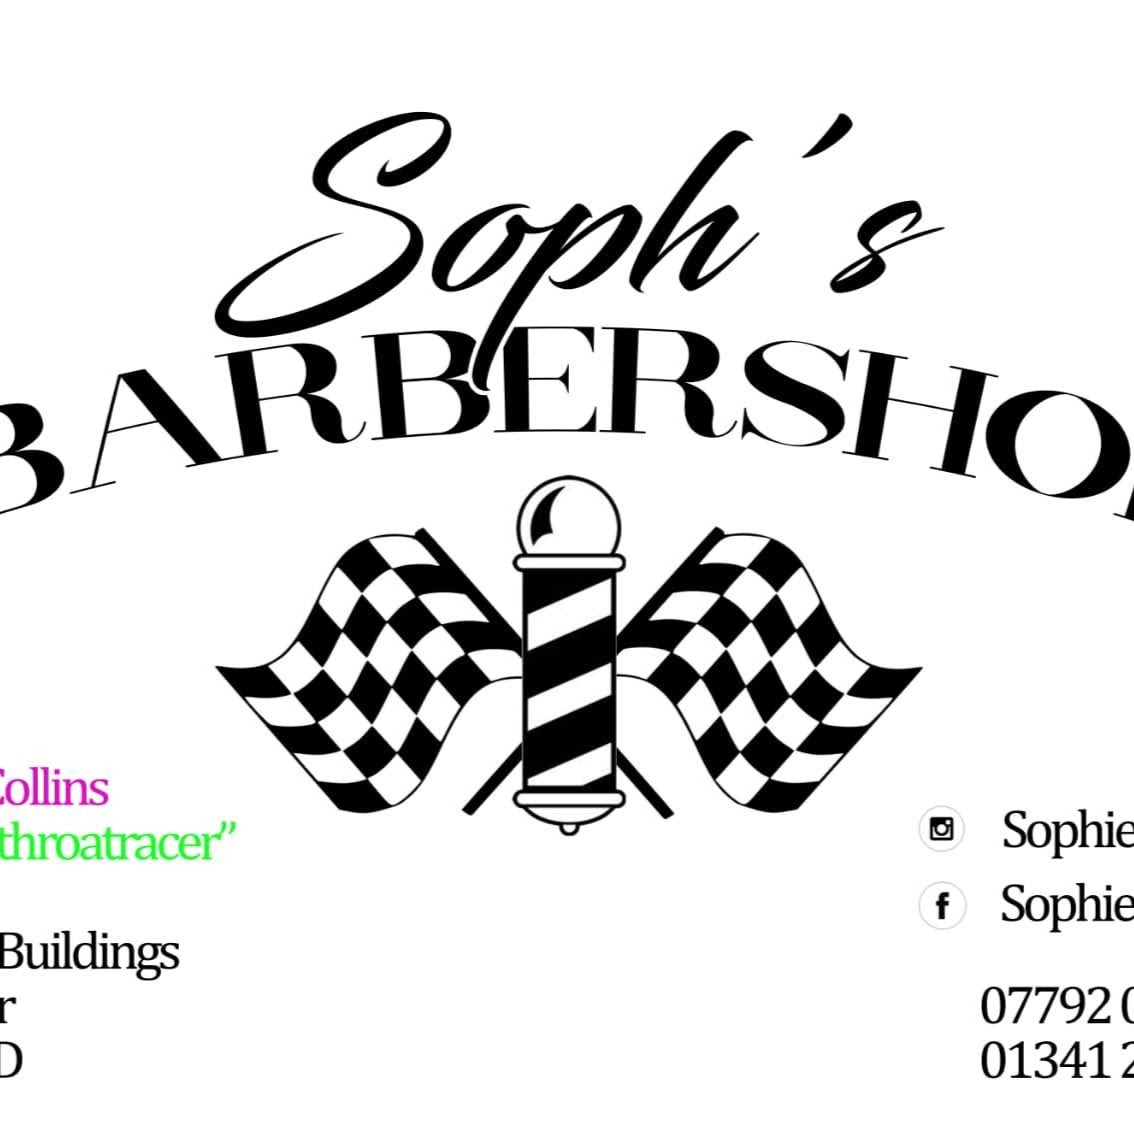 Sophs Barbershop.Barber Mens Haircut, Styling Skinfades Perm`s, Hot towel wet Shave. Gwynedd | 1 Victoria Buildings, Llanbedr LL45 2LD | +44 1341 241379